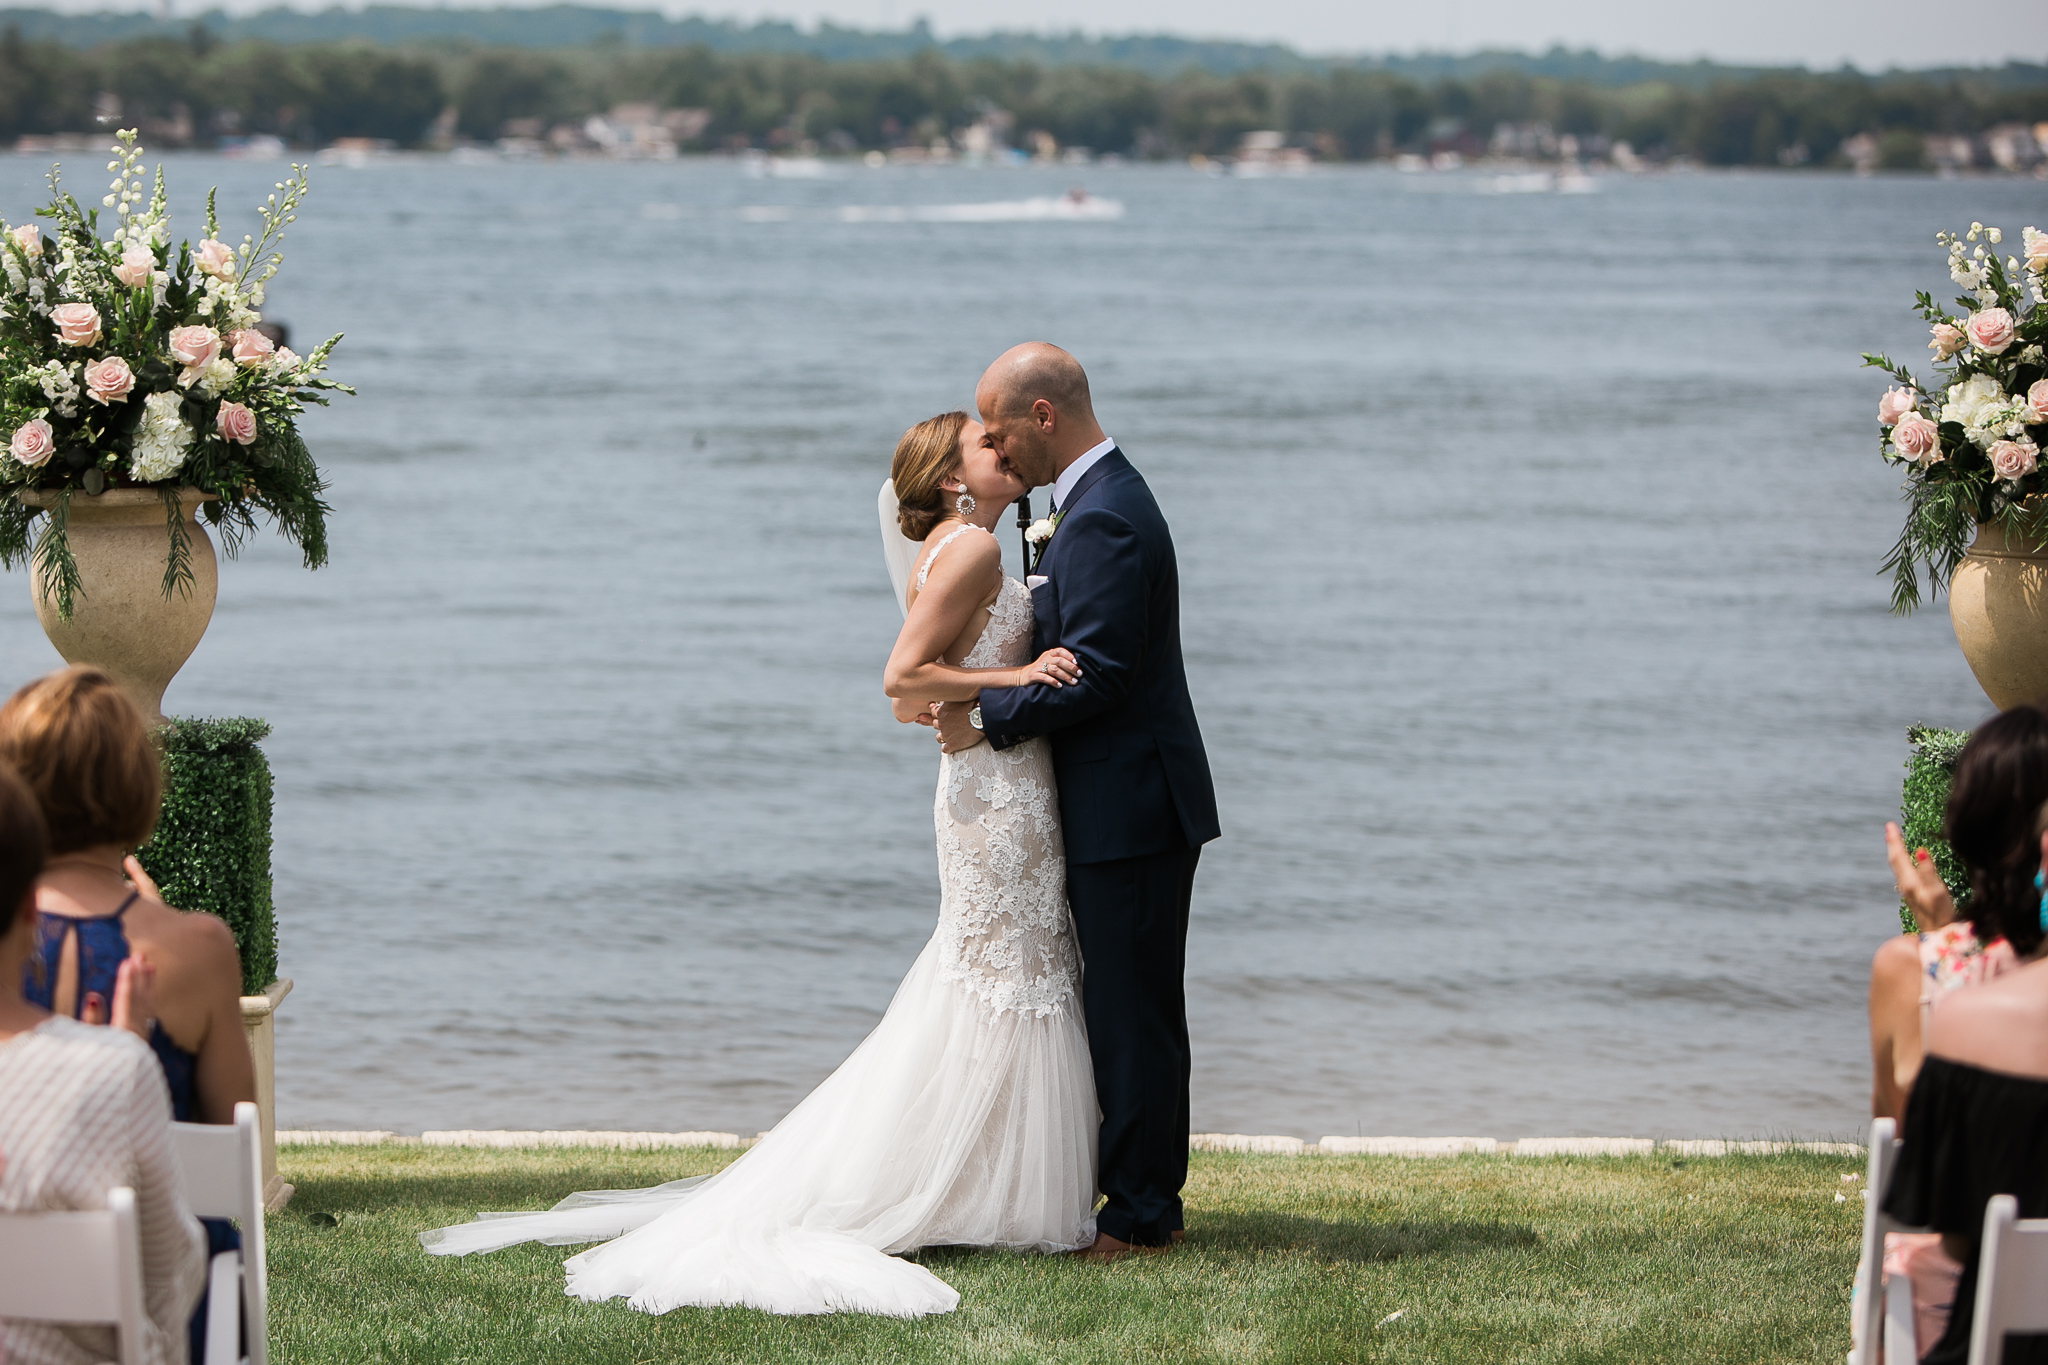 Backyard-Wisconsin-Lake-wedding_085.jpg